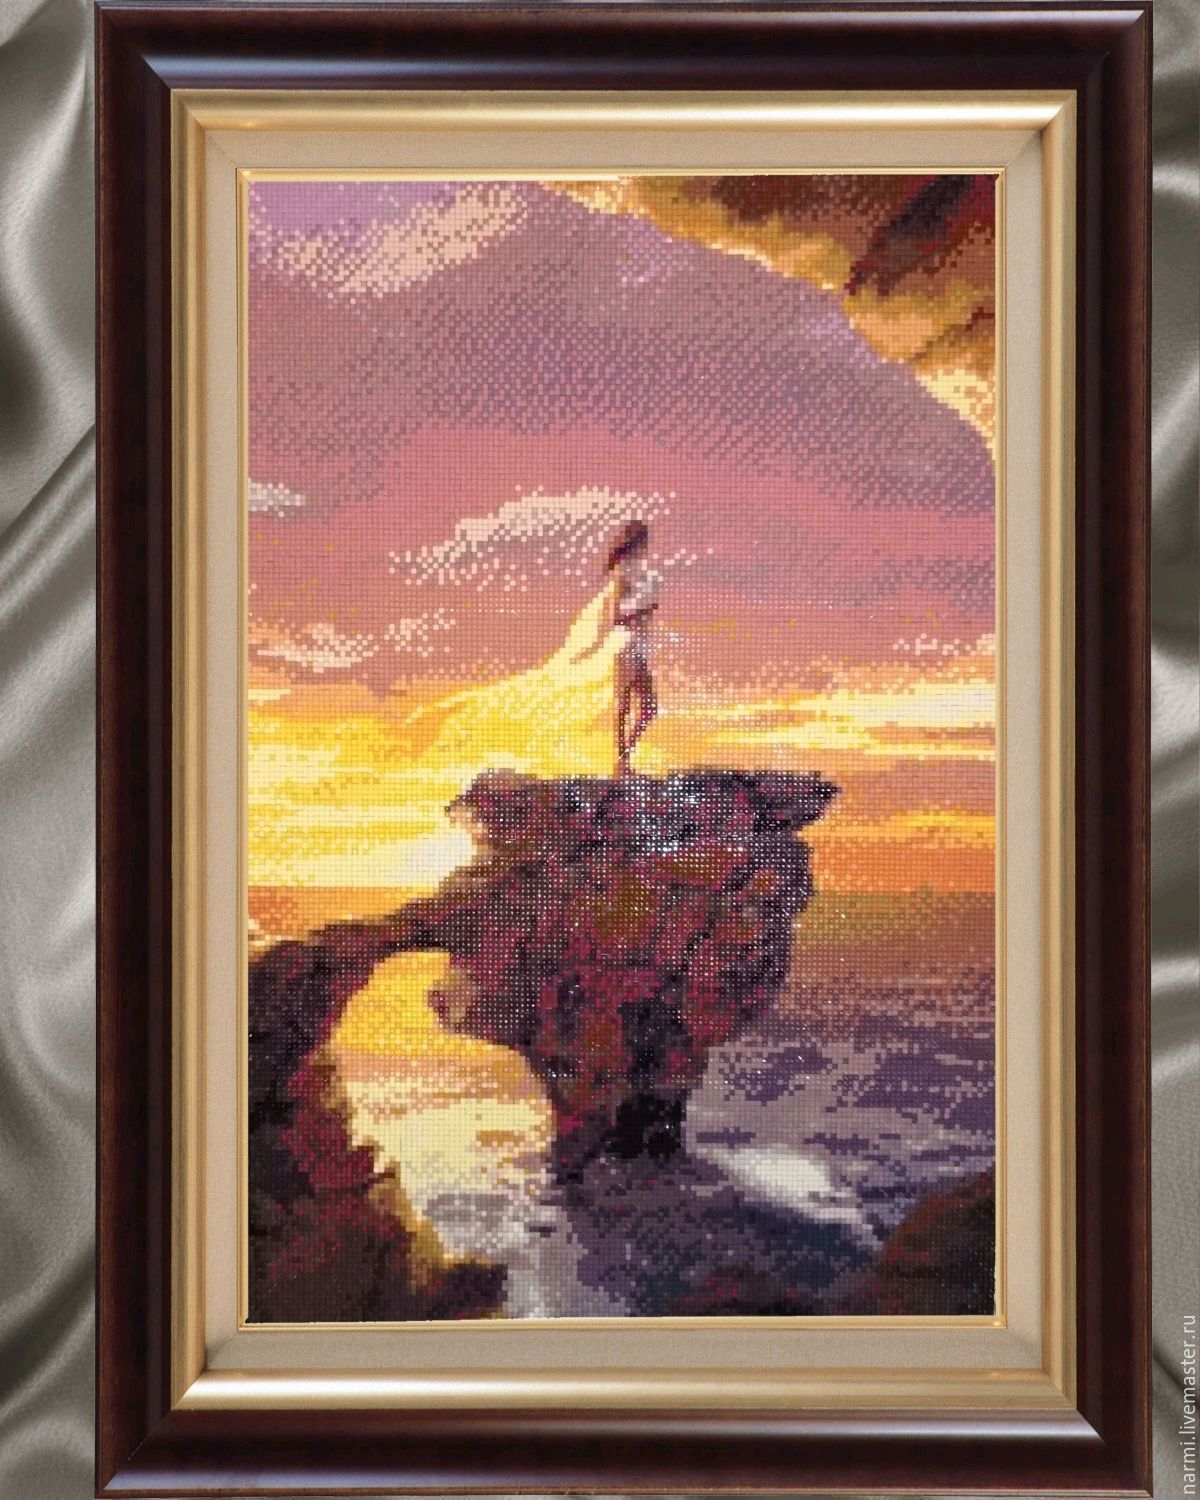 Alone with the sea diamond painting